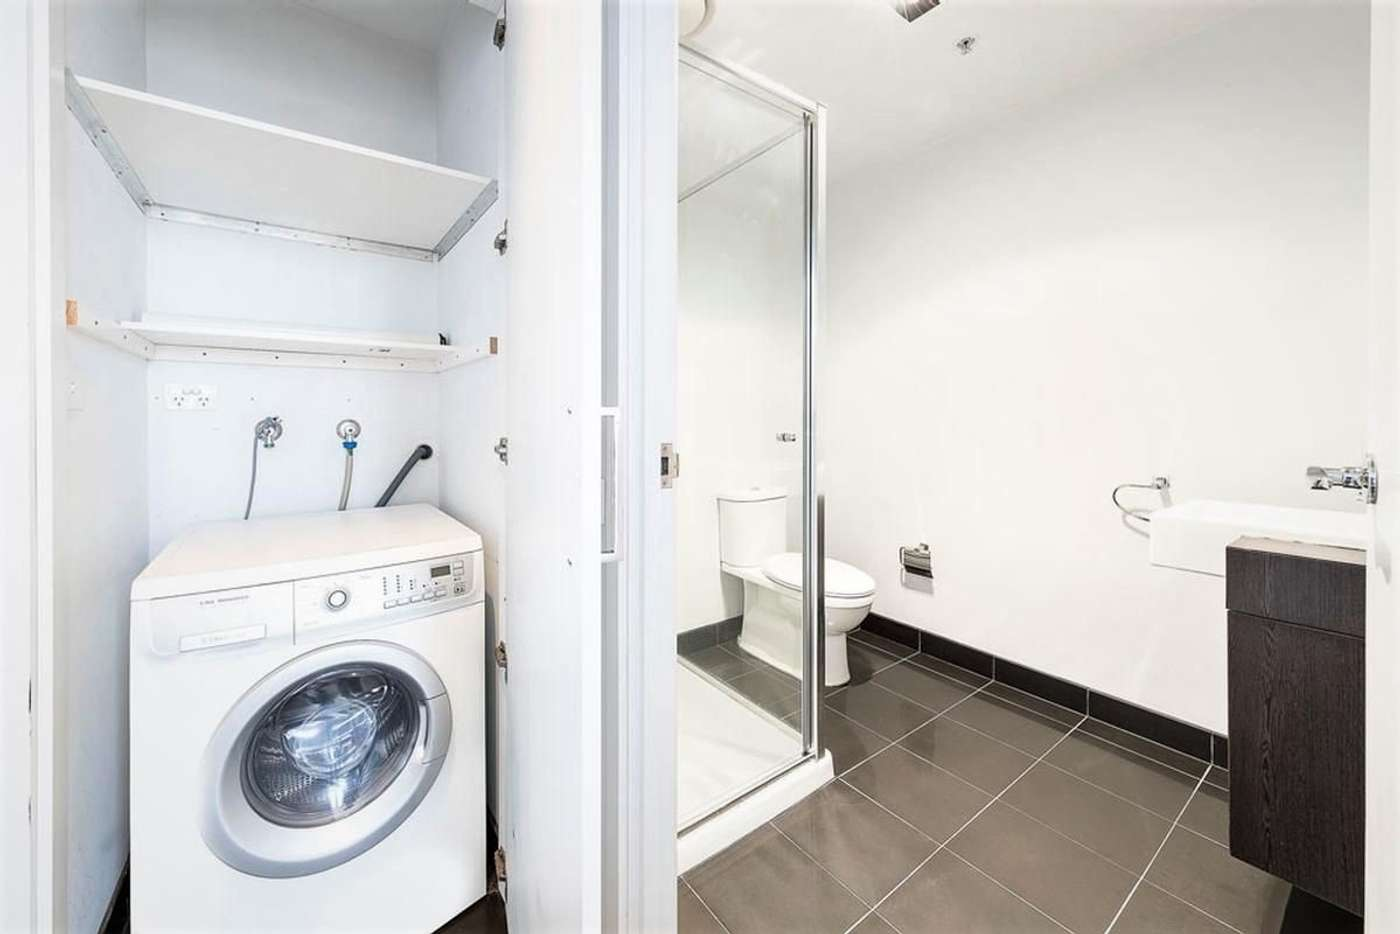 Seventh view of Homely apartment listing, 1604/483 Swanston St, Melbourne VIC 3000